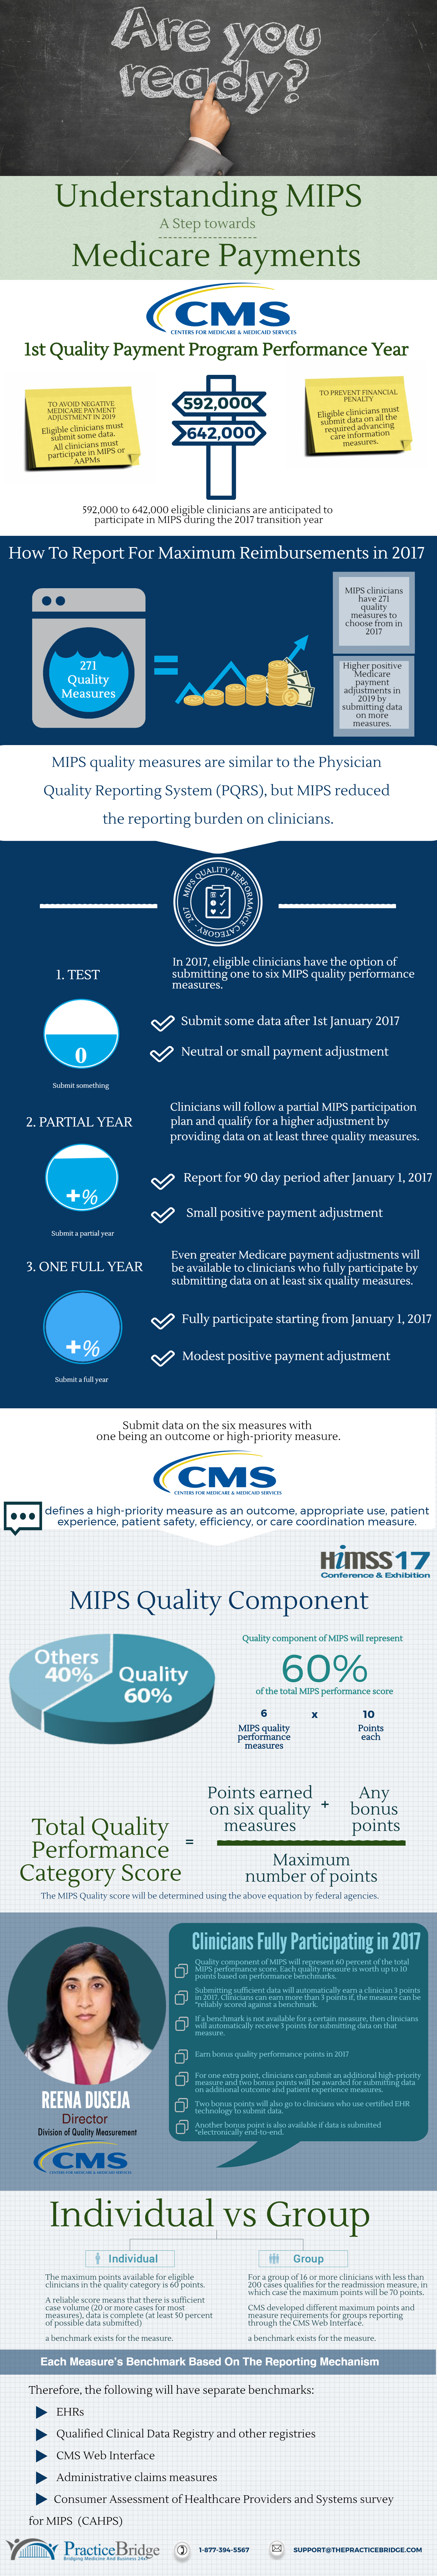 Merit Based incentive payment System for Medicare Reimbursement Payments